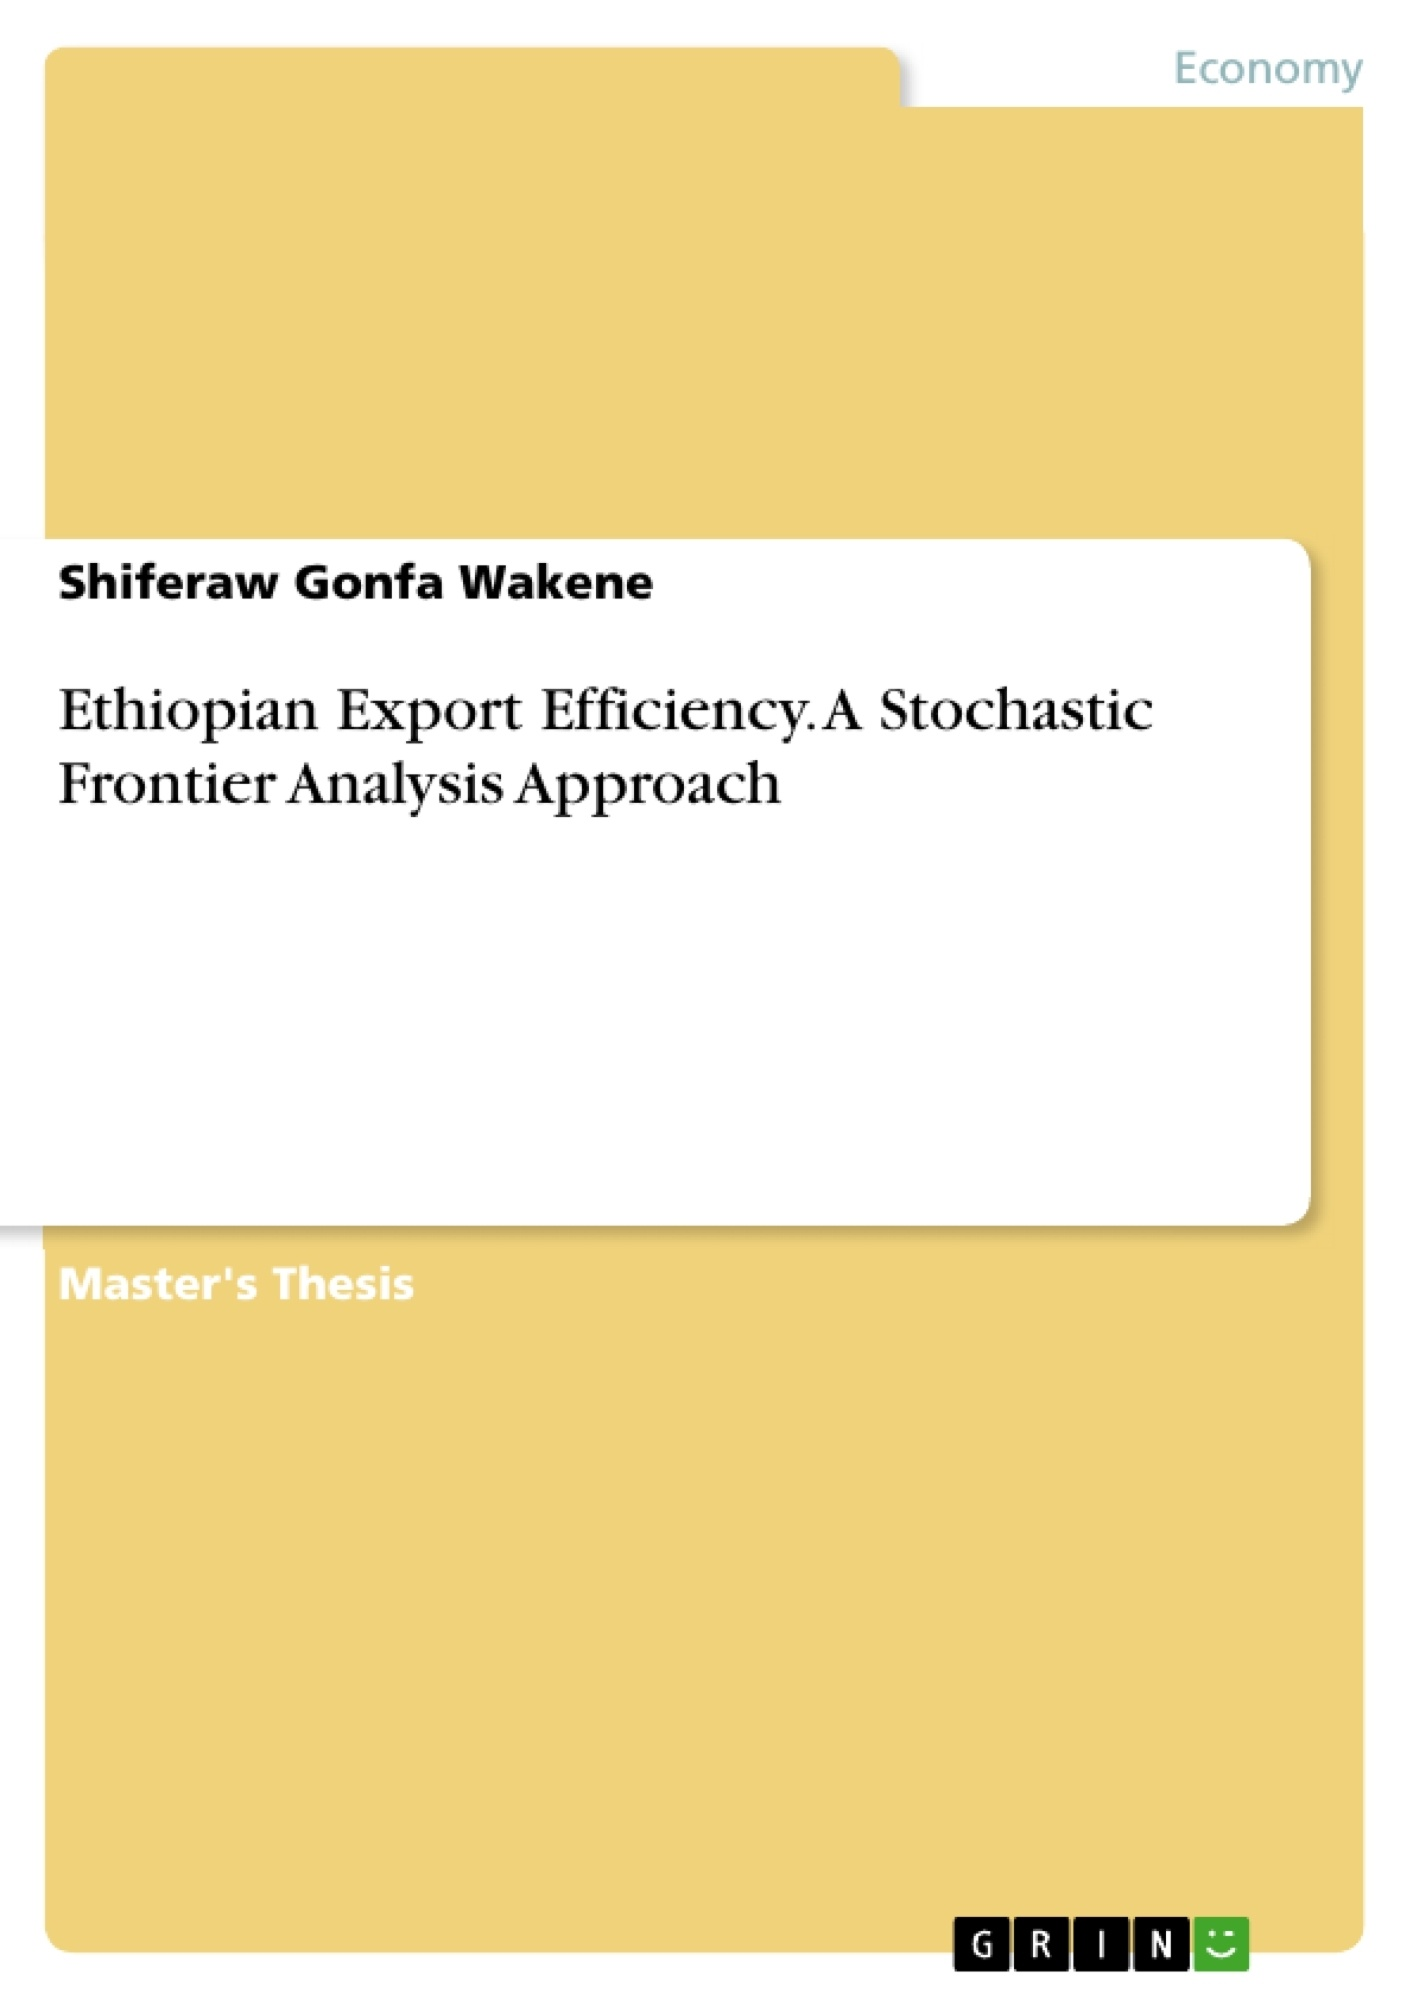 Title: Ethiopian Export Efficiency. A Stochastic Frontier Analysis Approach